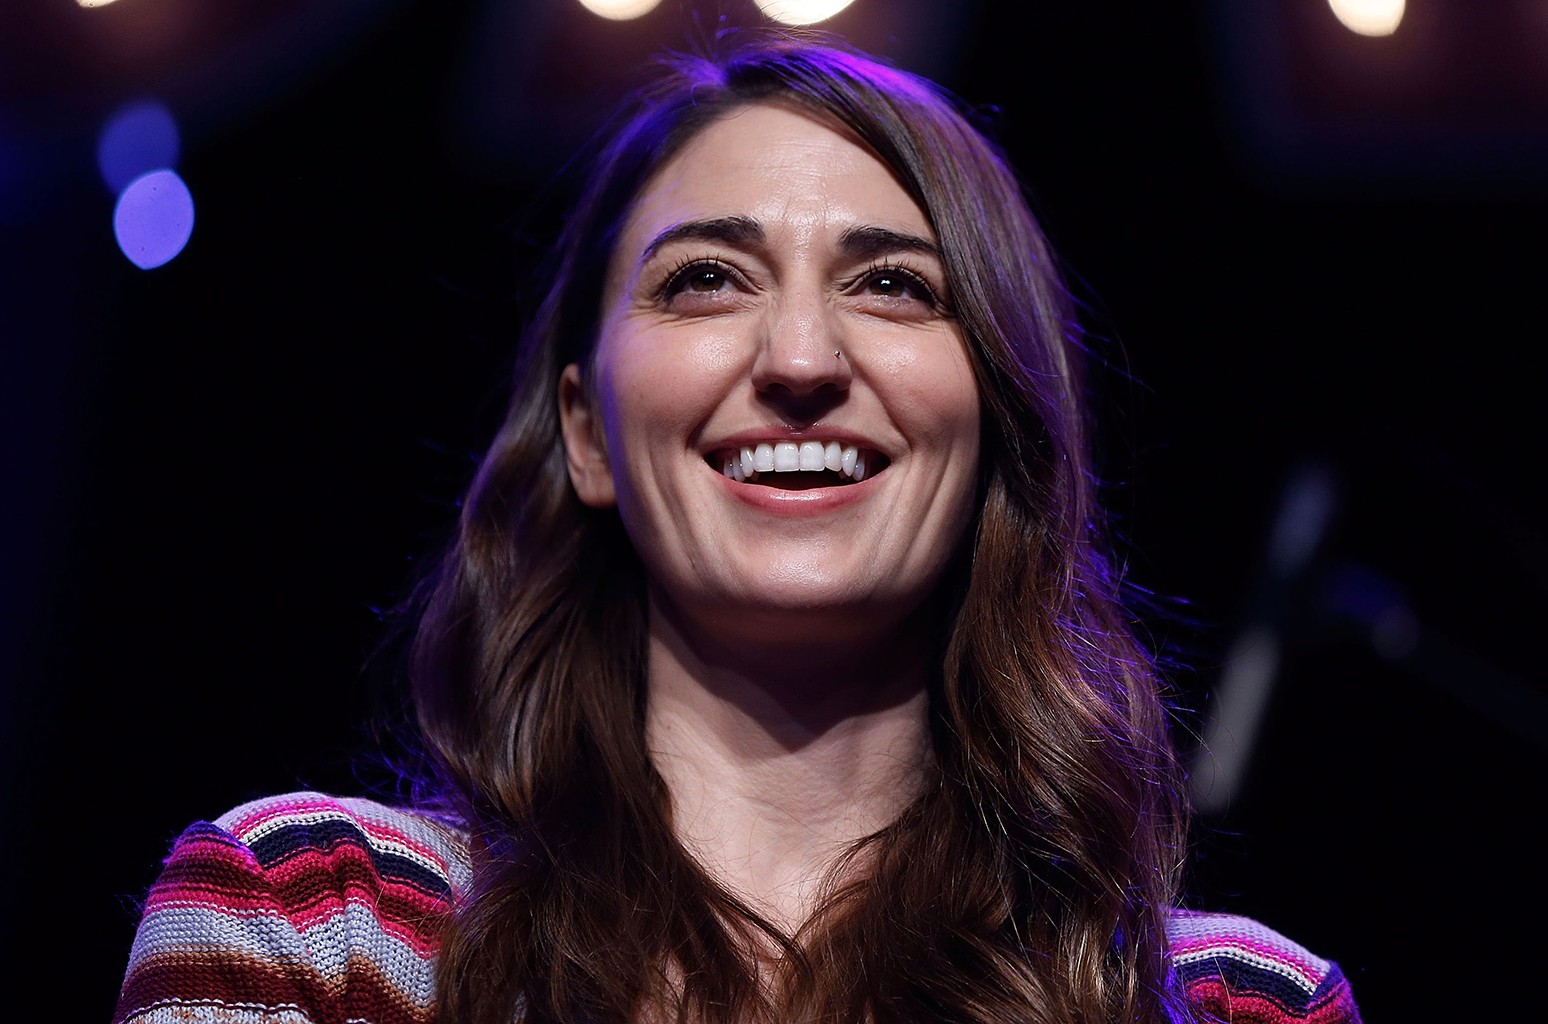 Sara Bareilles attends BroadwayCon 2016 at the Hilton Midtown on Jan. 24, 2016 in New York City.